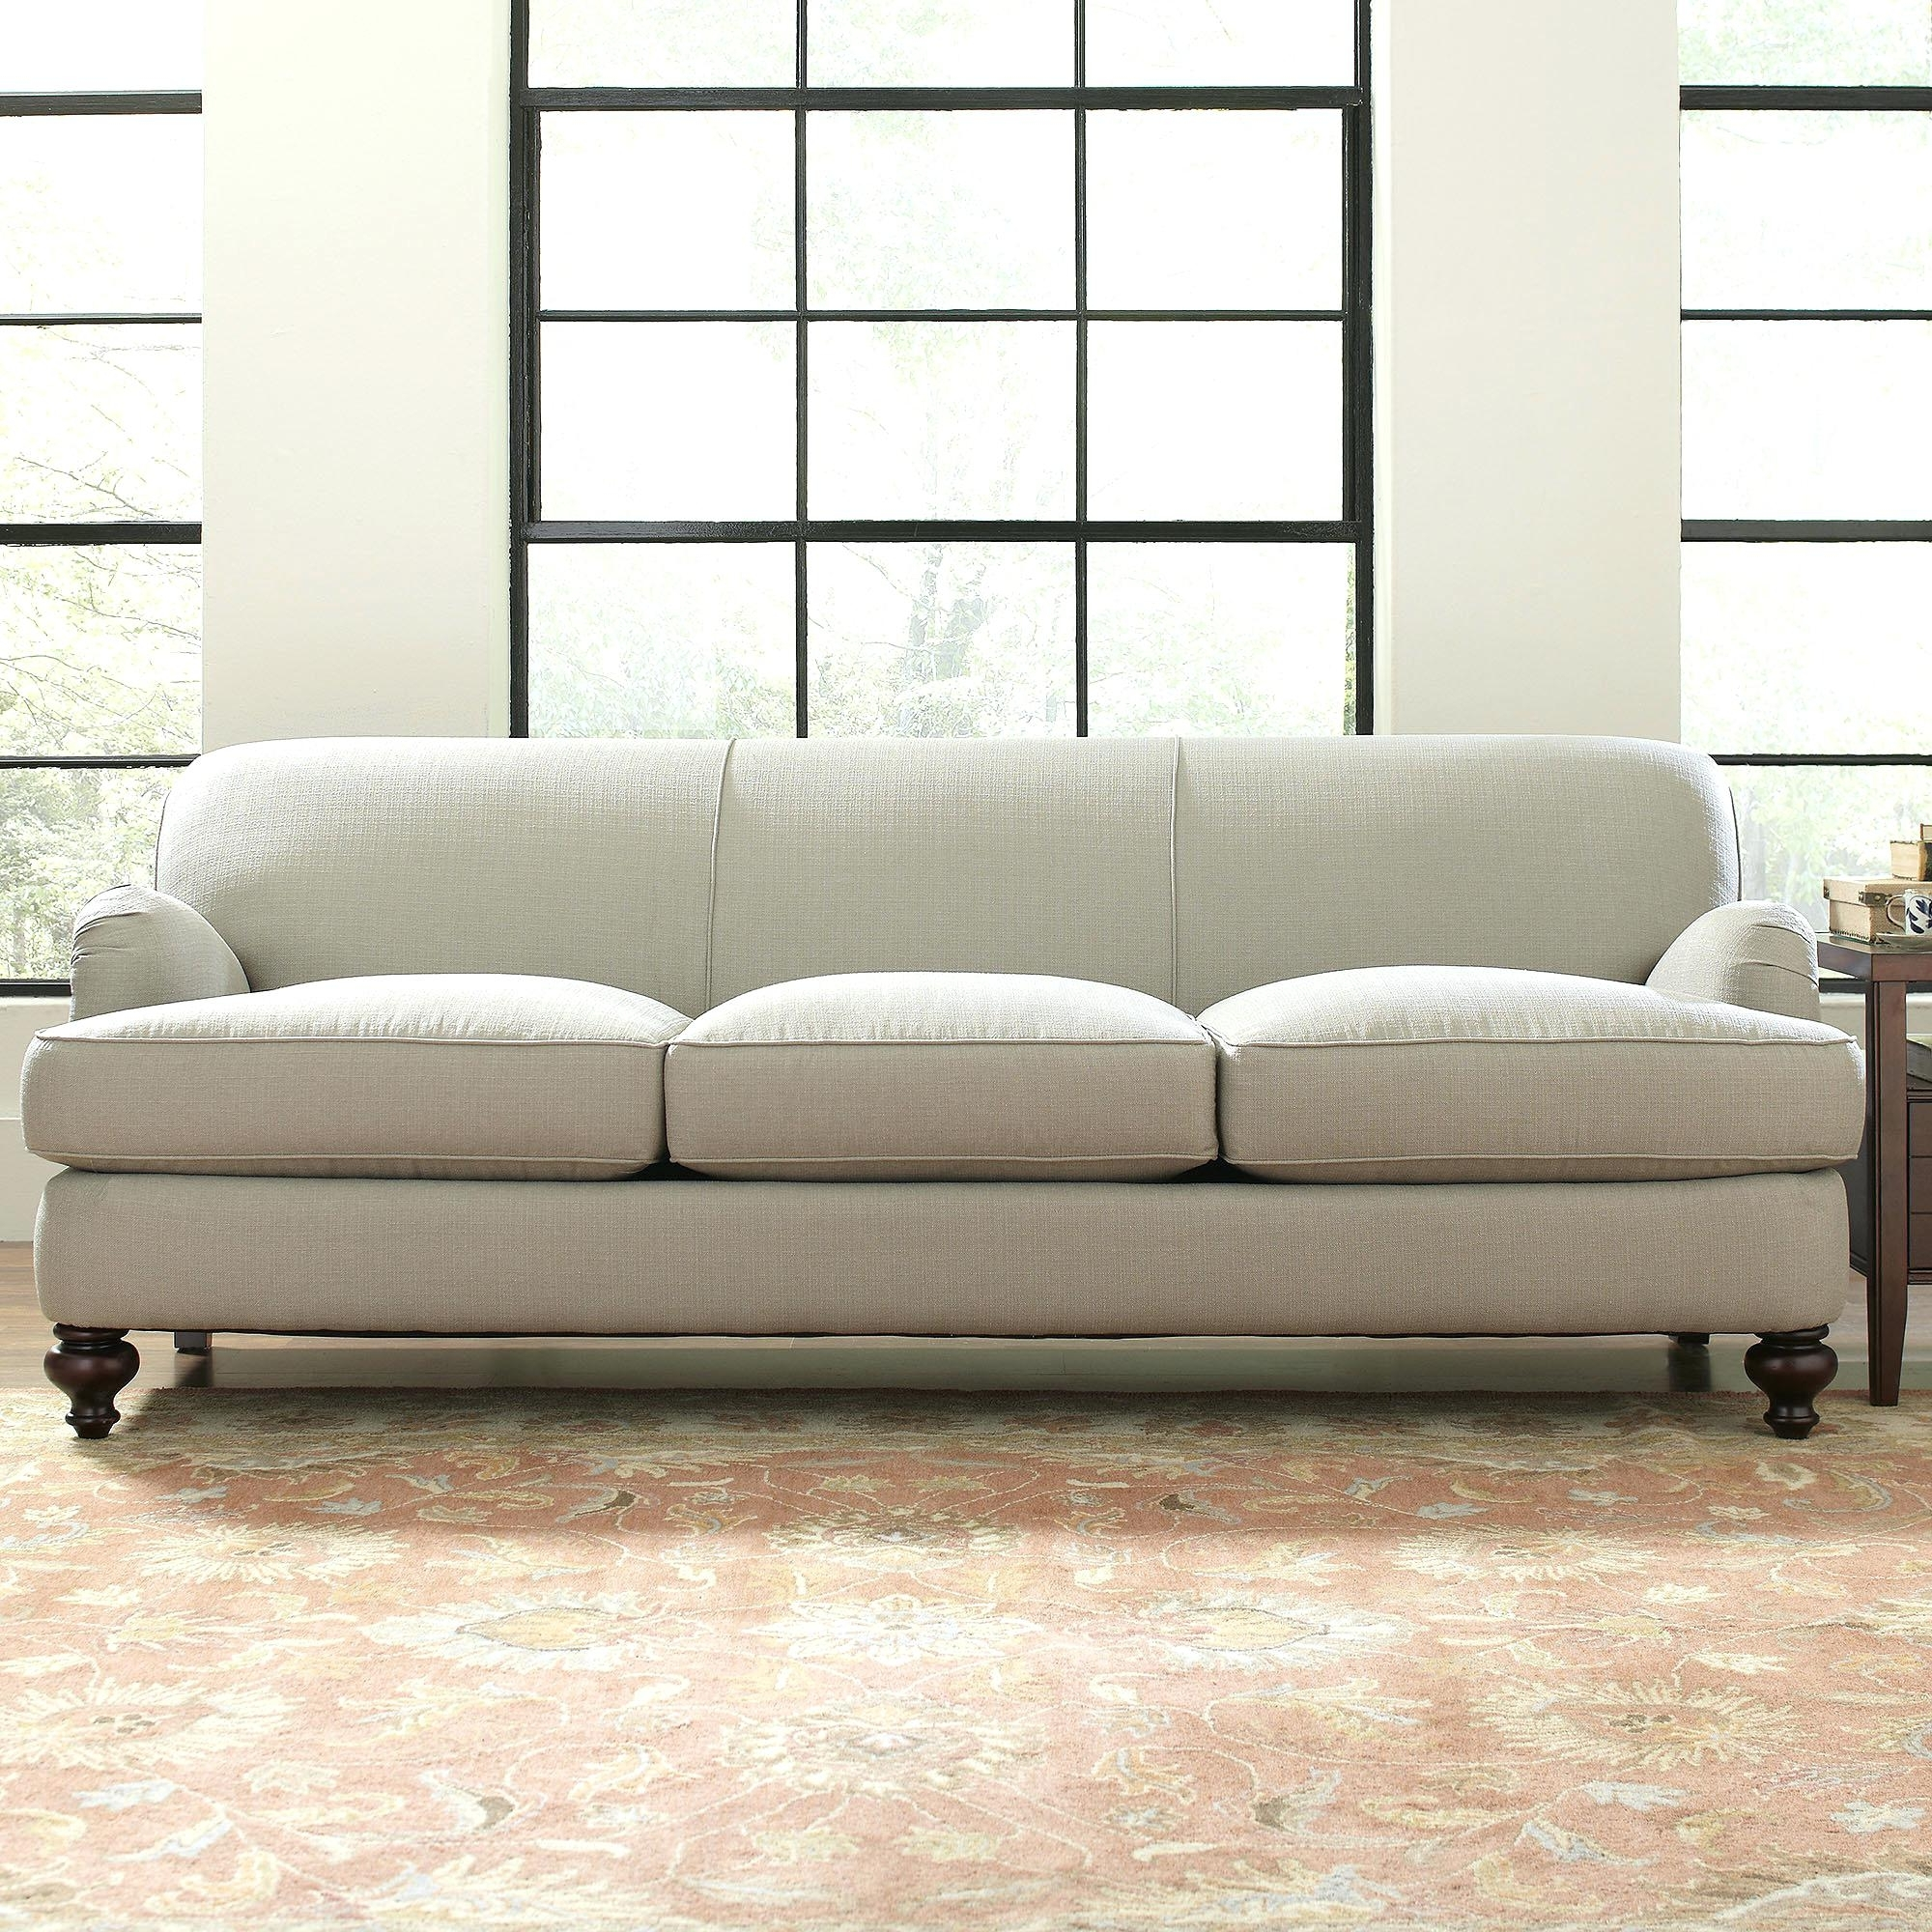 Recent Durham Region Sectional Sofas Throughout Durham Furniture Stores Raleigh Region Ontario Used (View 9 of 15)